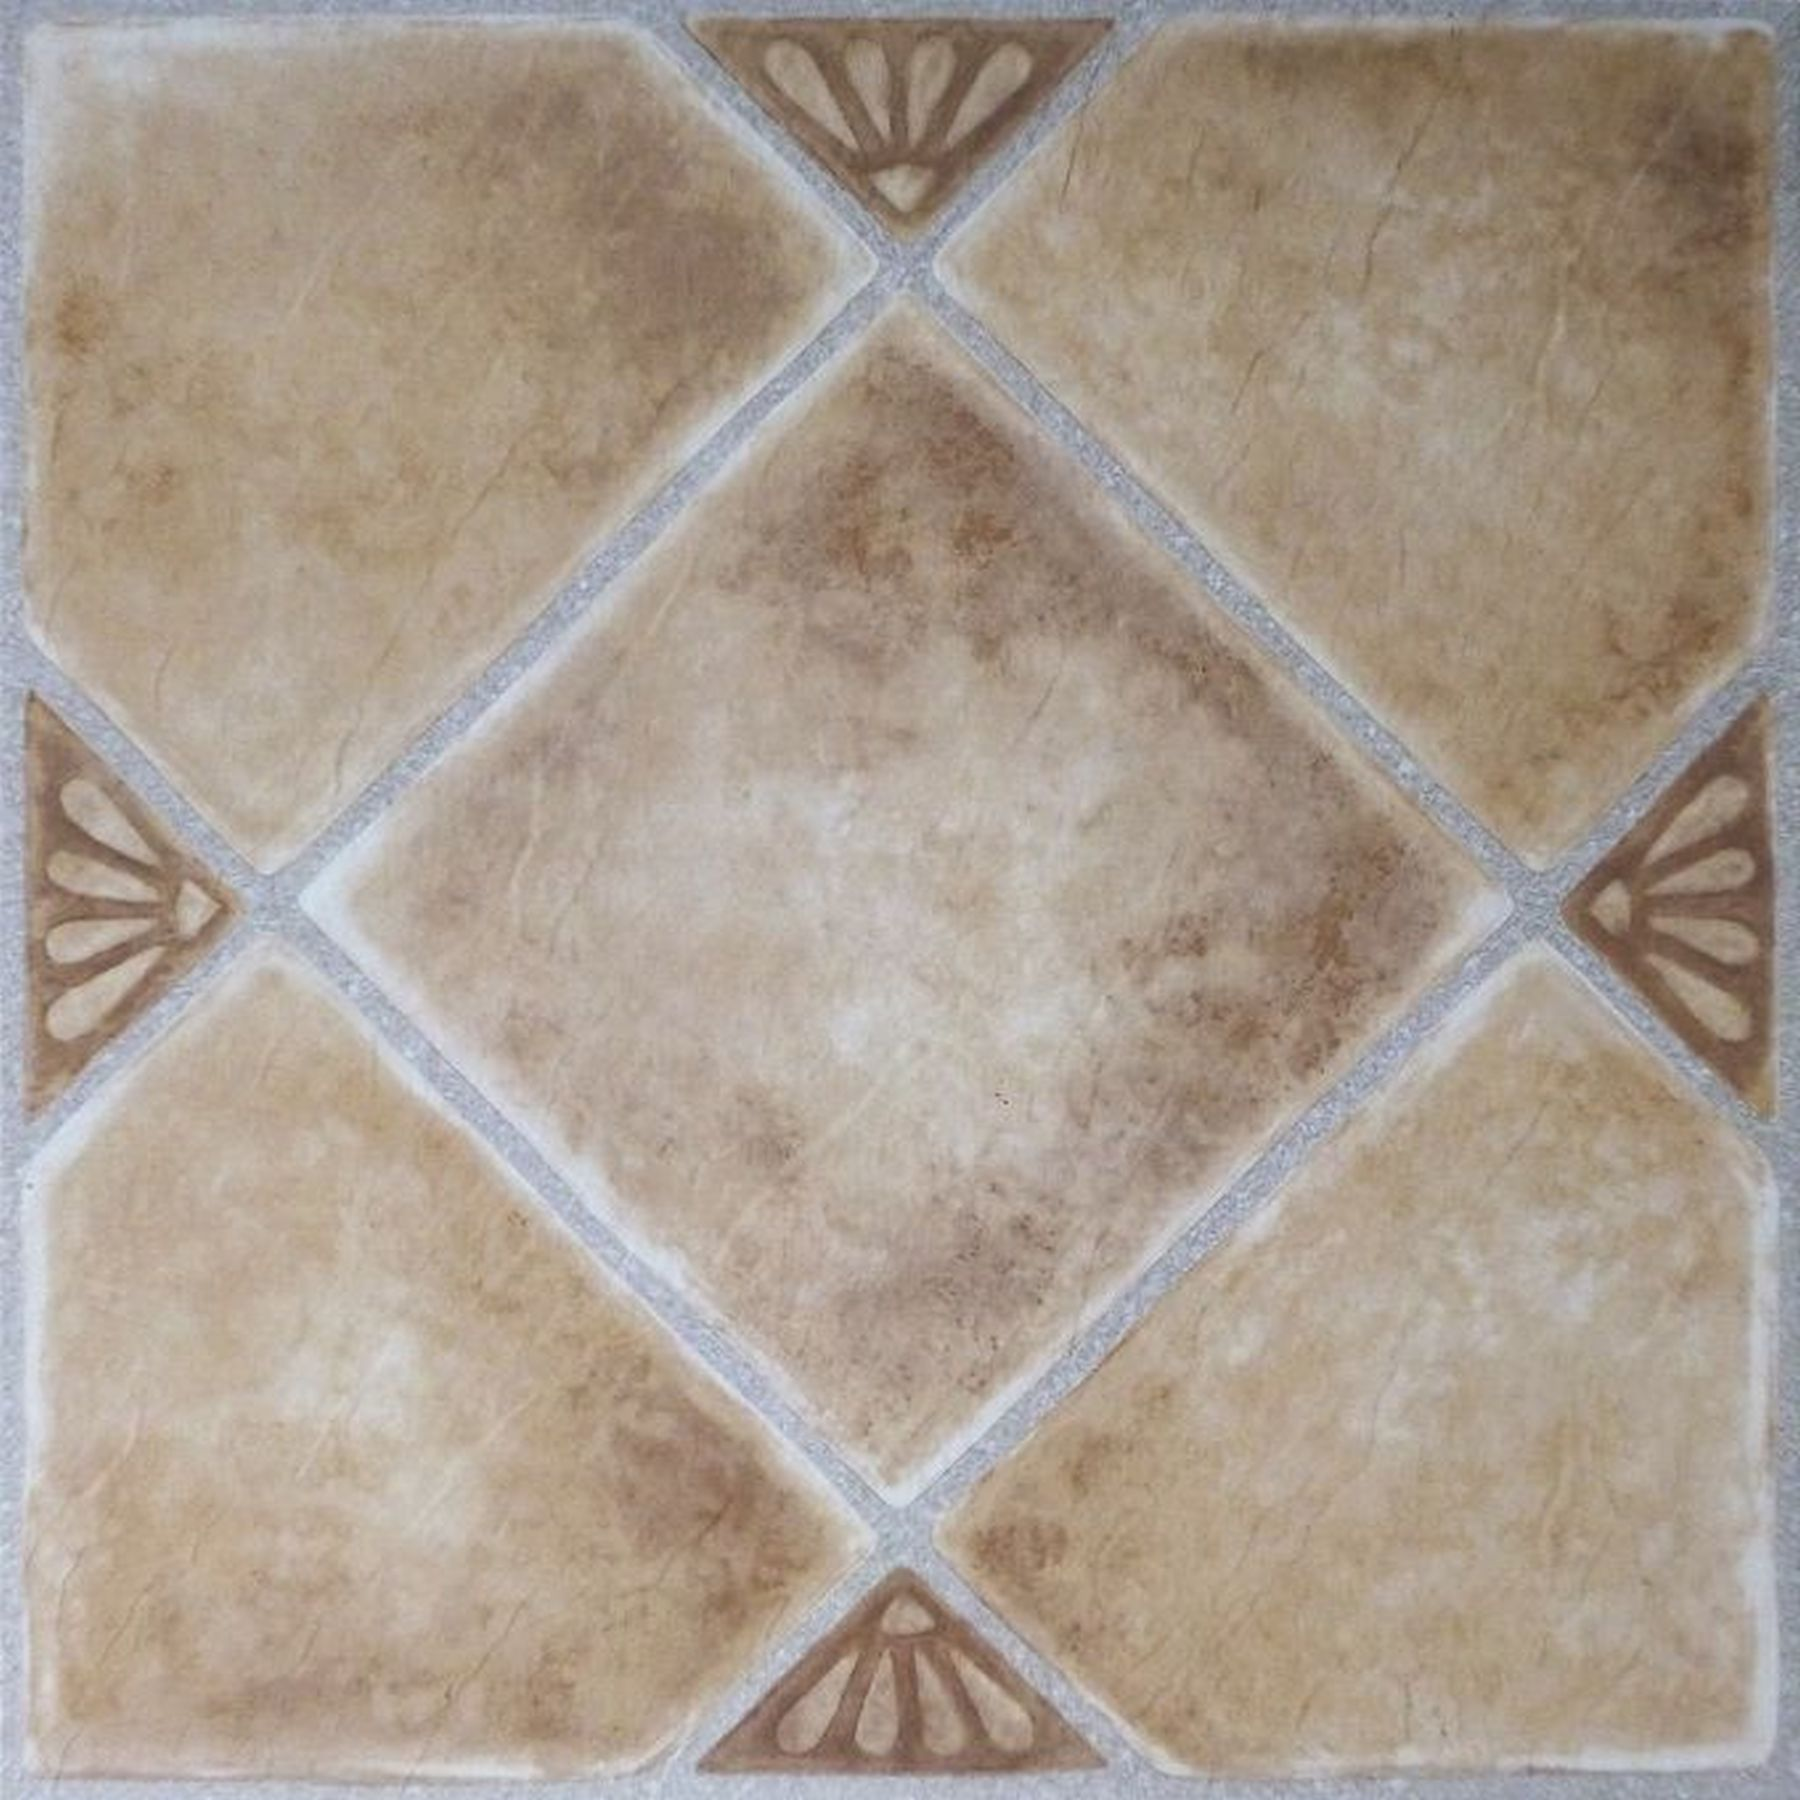 Traditional Elegance 5th Avenue Collection Beige Clay Diamond with Accents 12x12 Self Adhesive Vinyl Floor Tile - 45 Tiles/45 sq. ft.